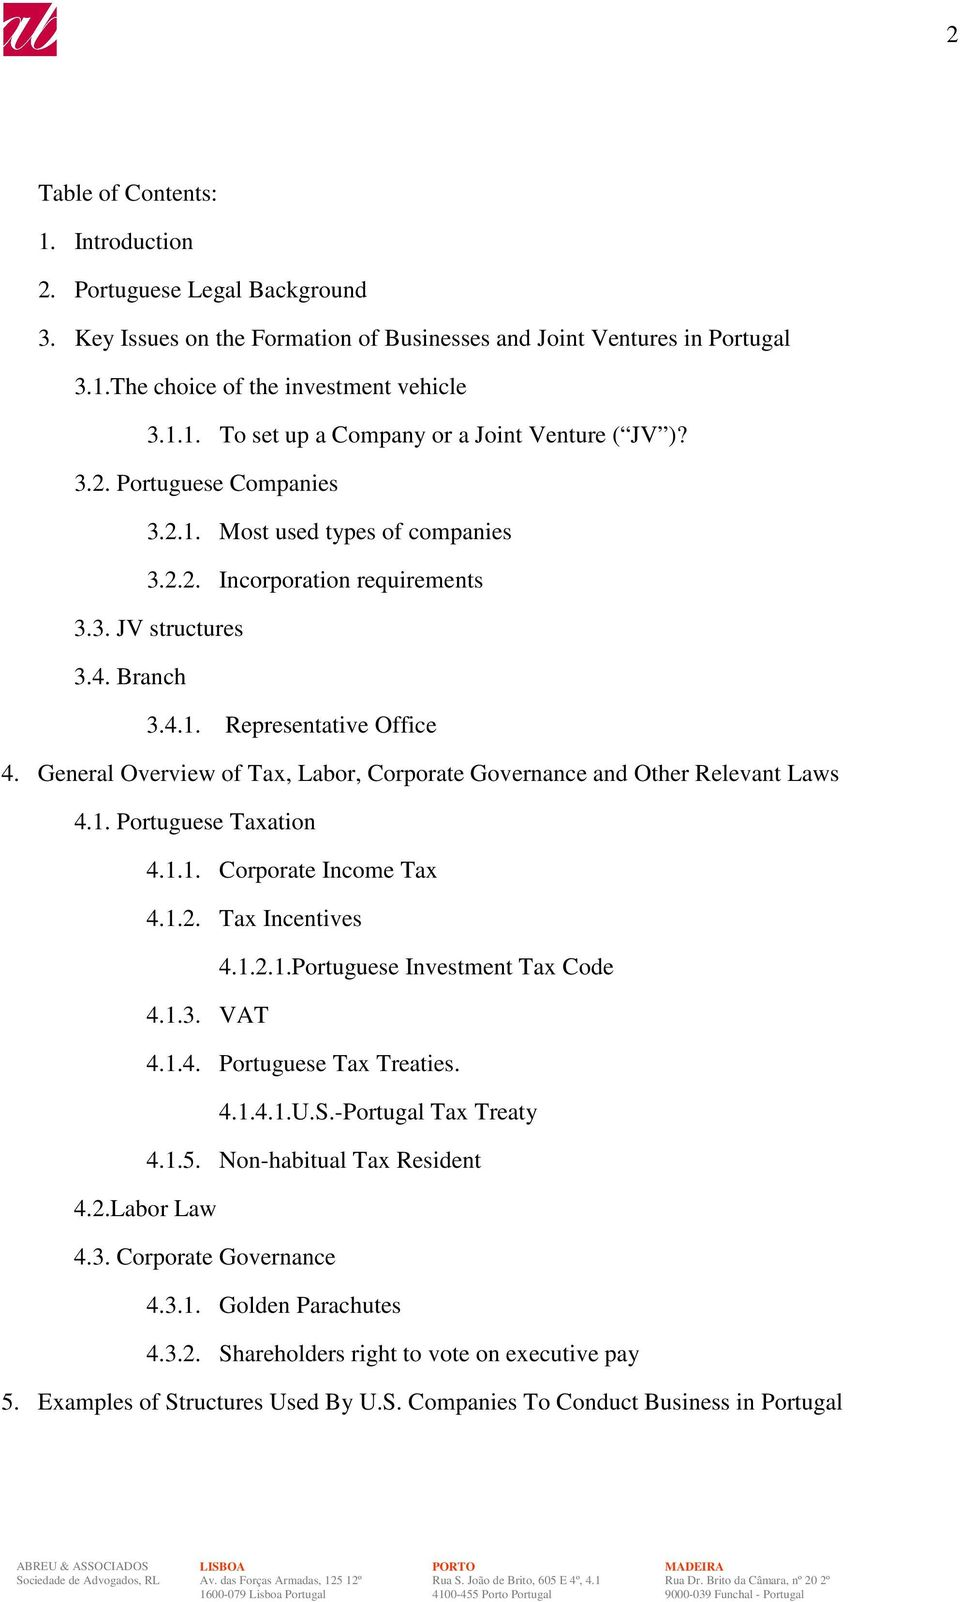 General Overview of Tax, Labor, Corporate Governance and Other Relevant Laws 4.1. Portuguese Taxation 4.1.1. Corporate Income Tax 4.1.2. Tax Incentives 4.1.2.1.Portuguese Investment Tax Code 4.1.3.